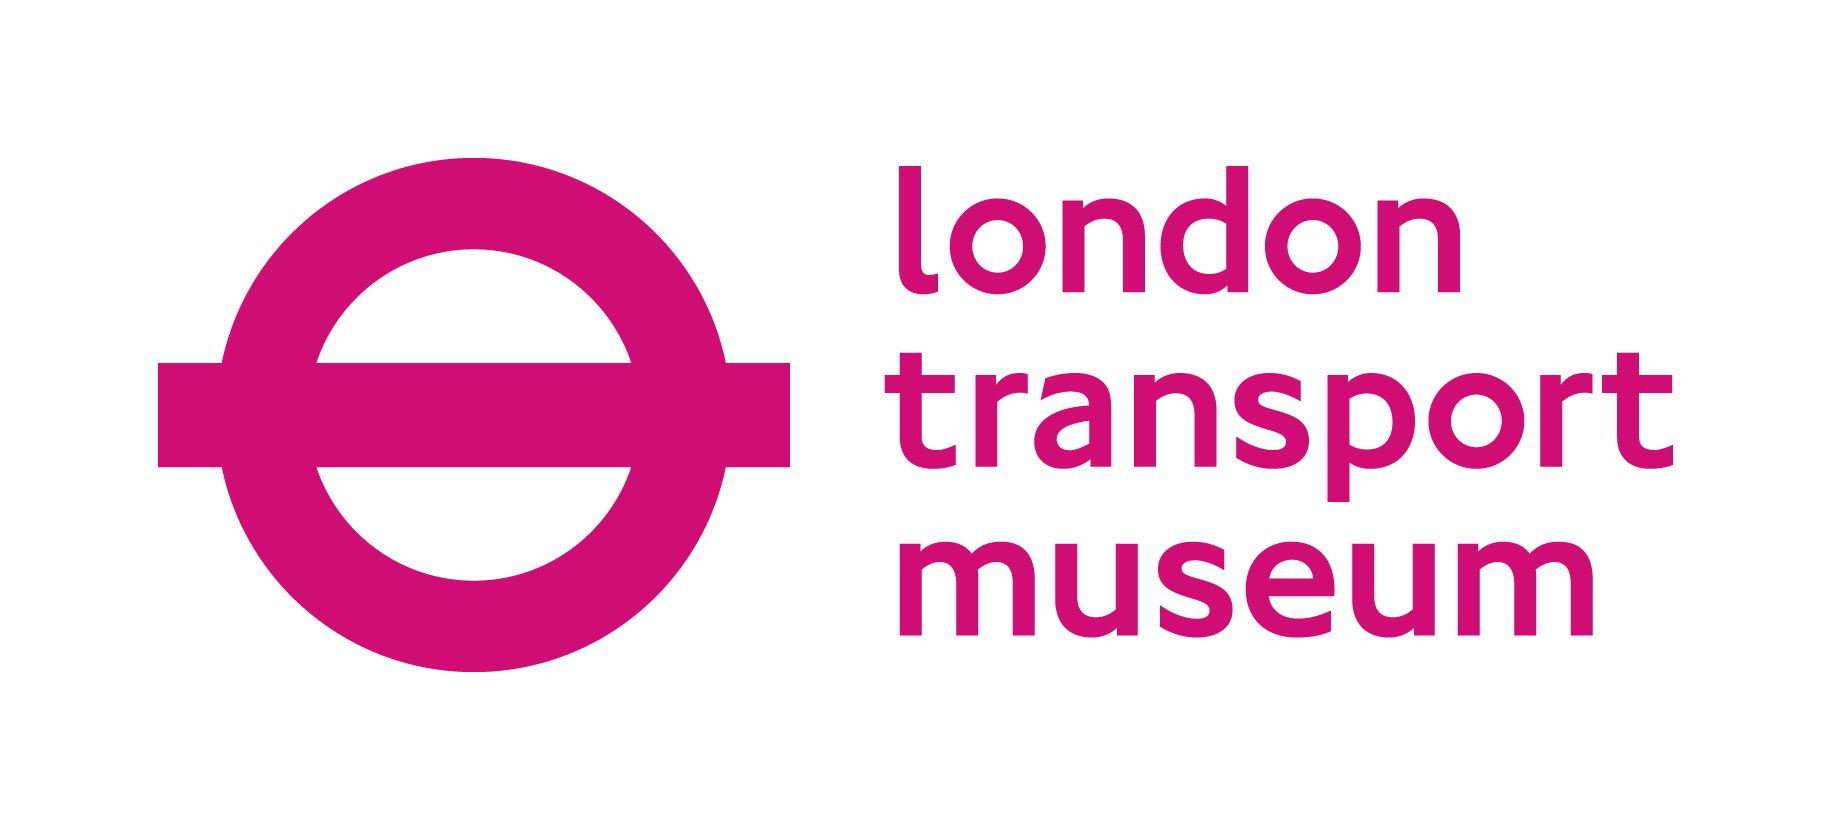 The London Transport Museum is a wonderful collection of all the types of transport used in the capital from the 19th Century, including trams, buses and trains. Find their opening hours on the website http://www.ltmuseum.co.uk/